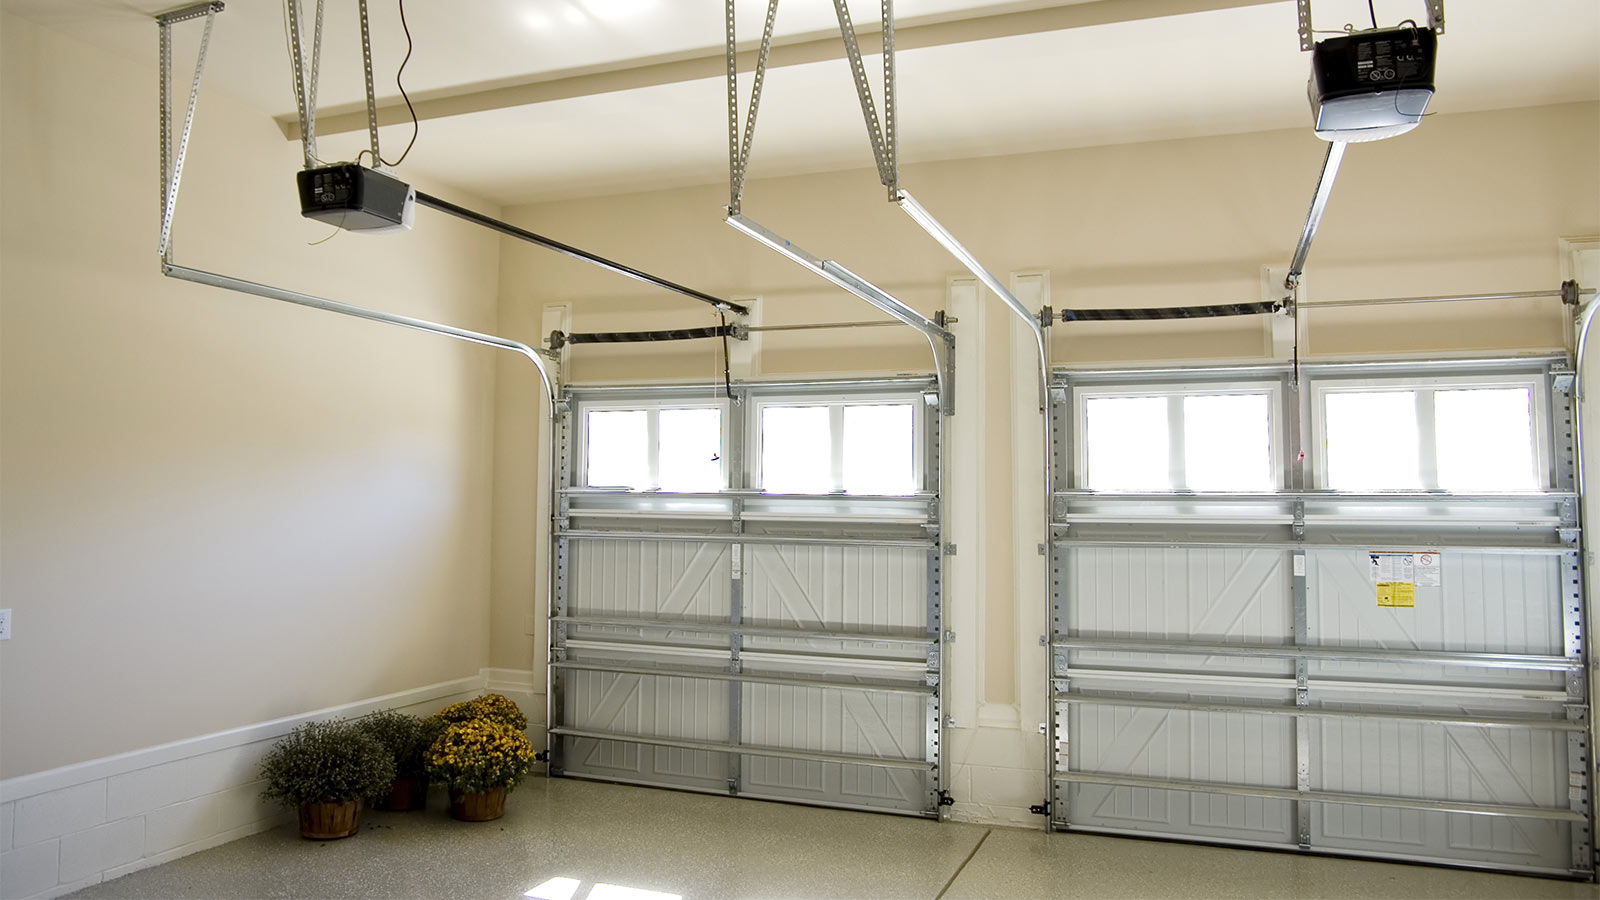 Sectional Garage Doors from Electric Roller Garage Doors Billericay suppliers.